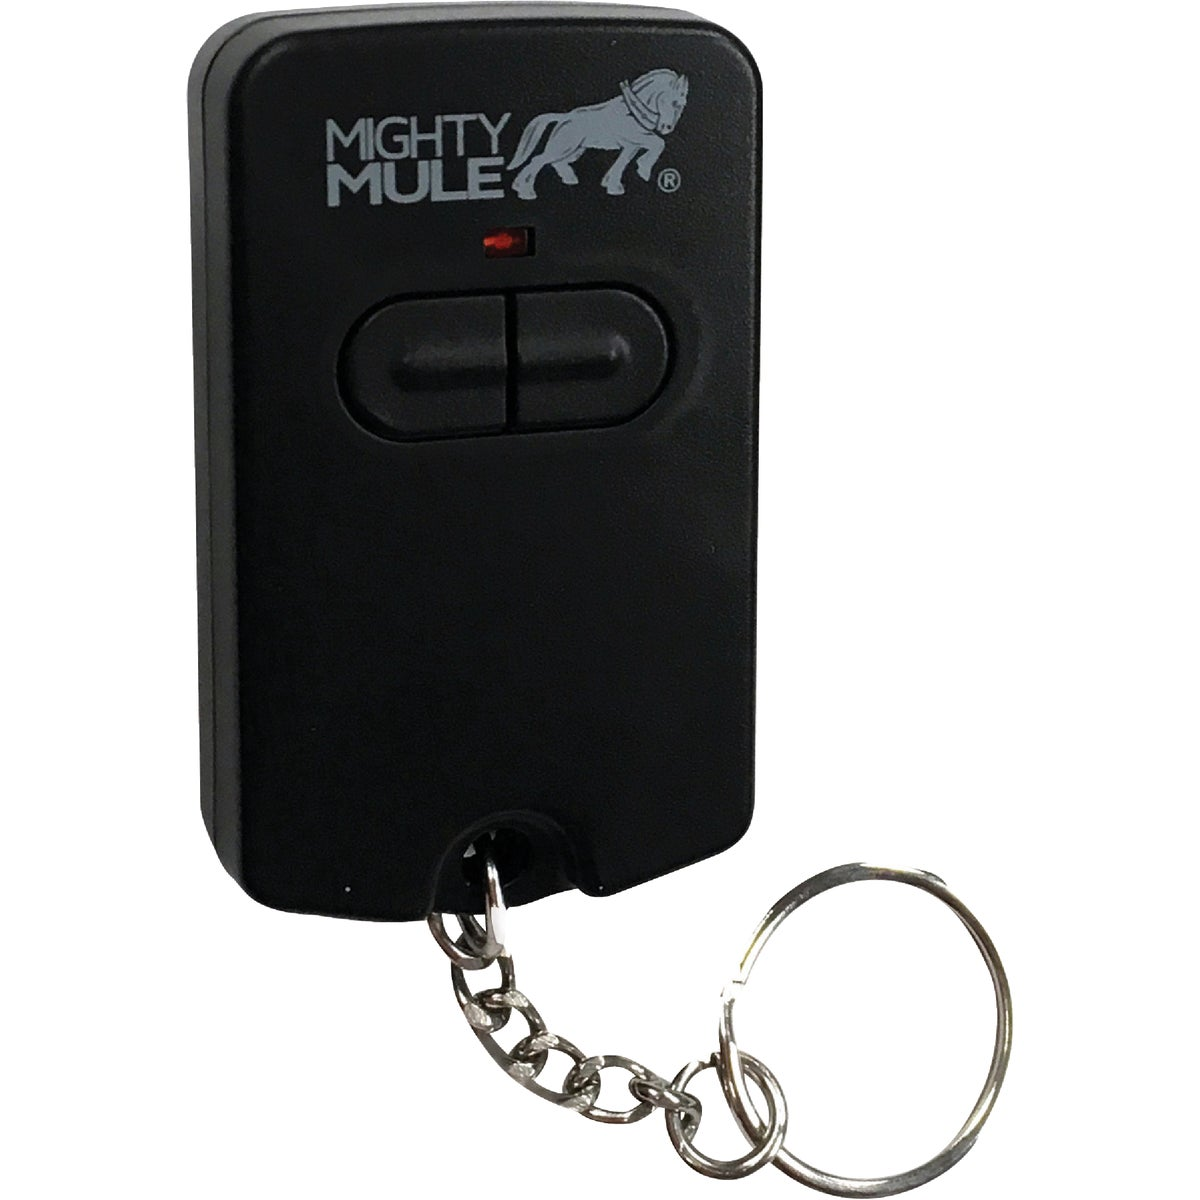 KEYCHAIN TRANSMITTER - FM134 by Gto Inc